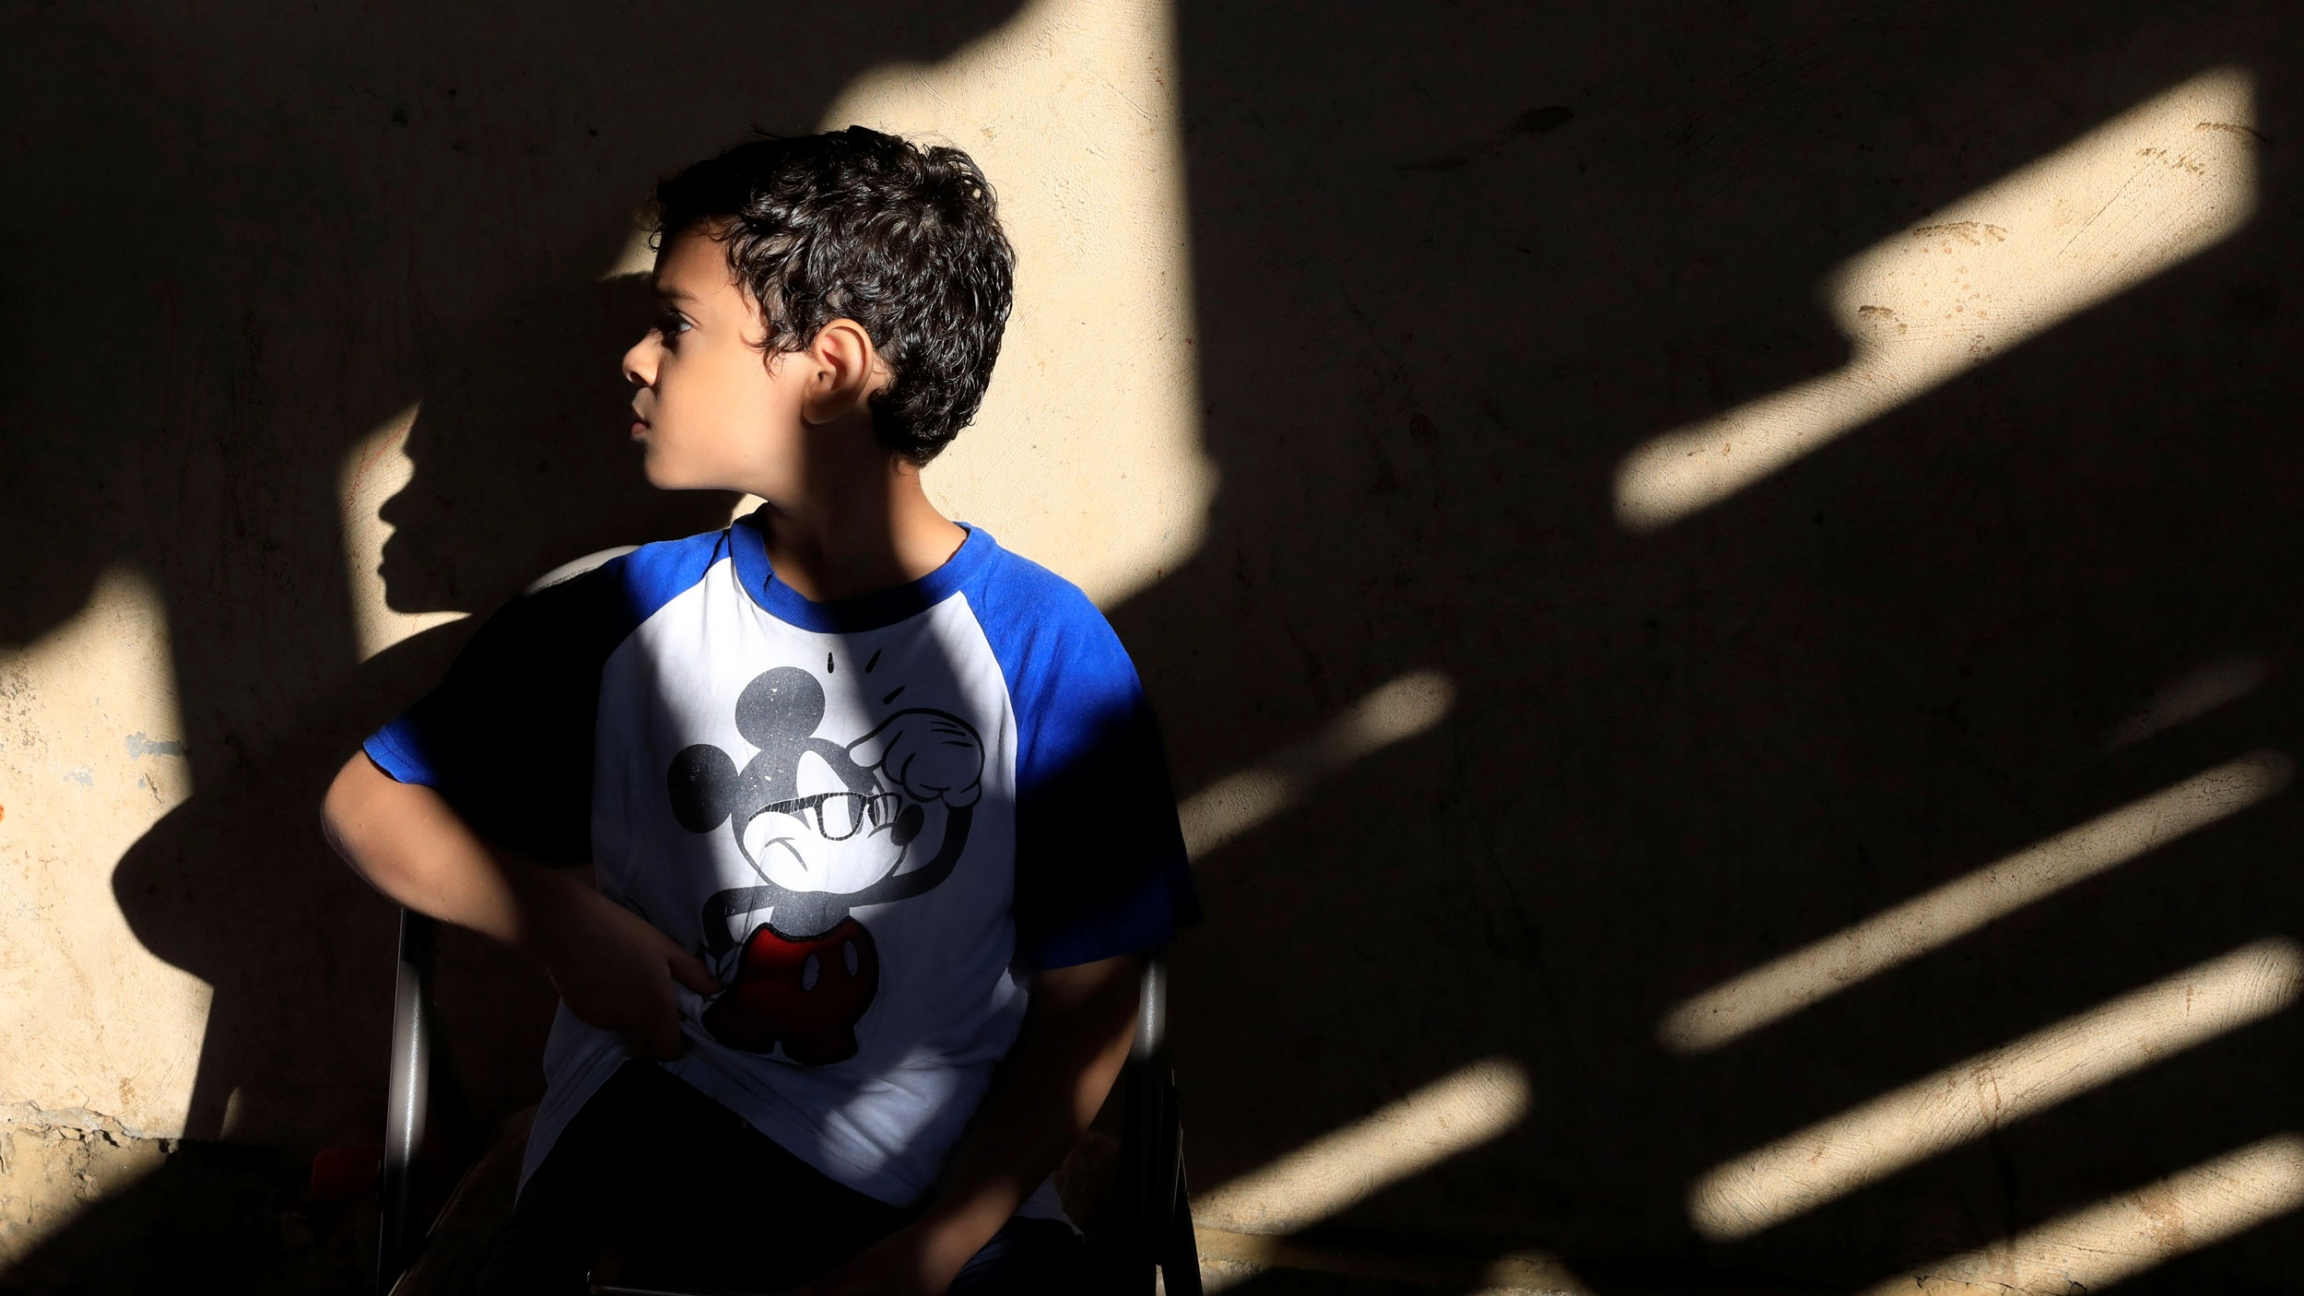 A young child is shown looking to his right and wearing a blue and white Mickey Mouse shirt.